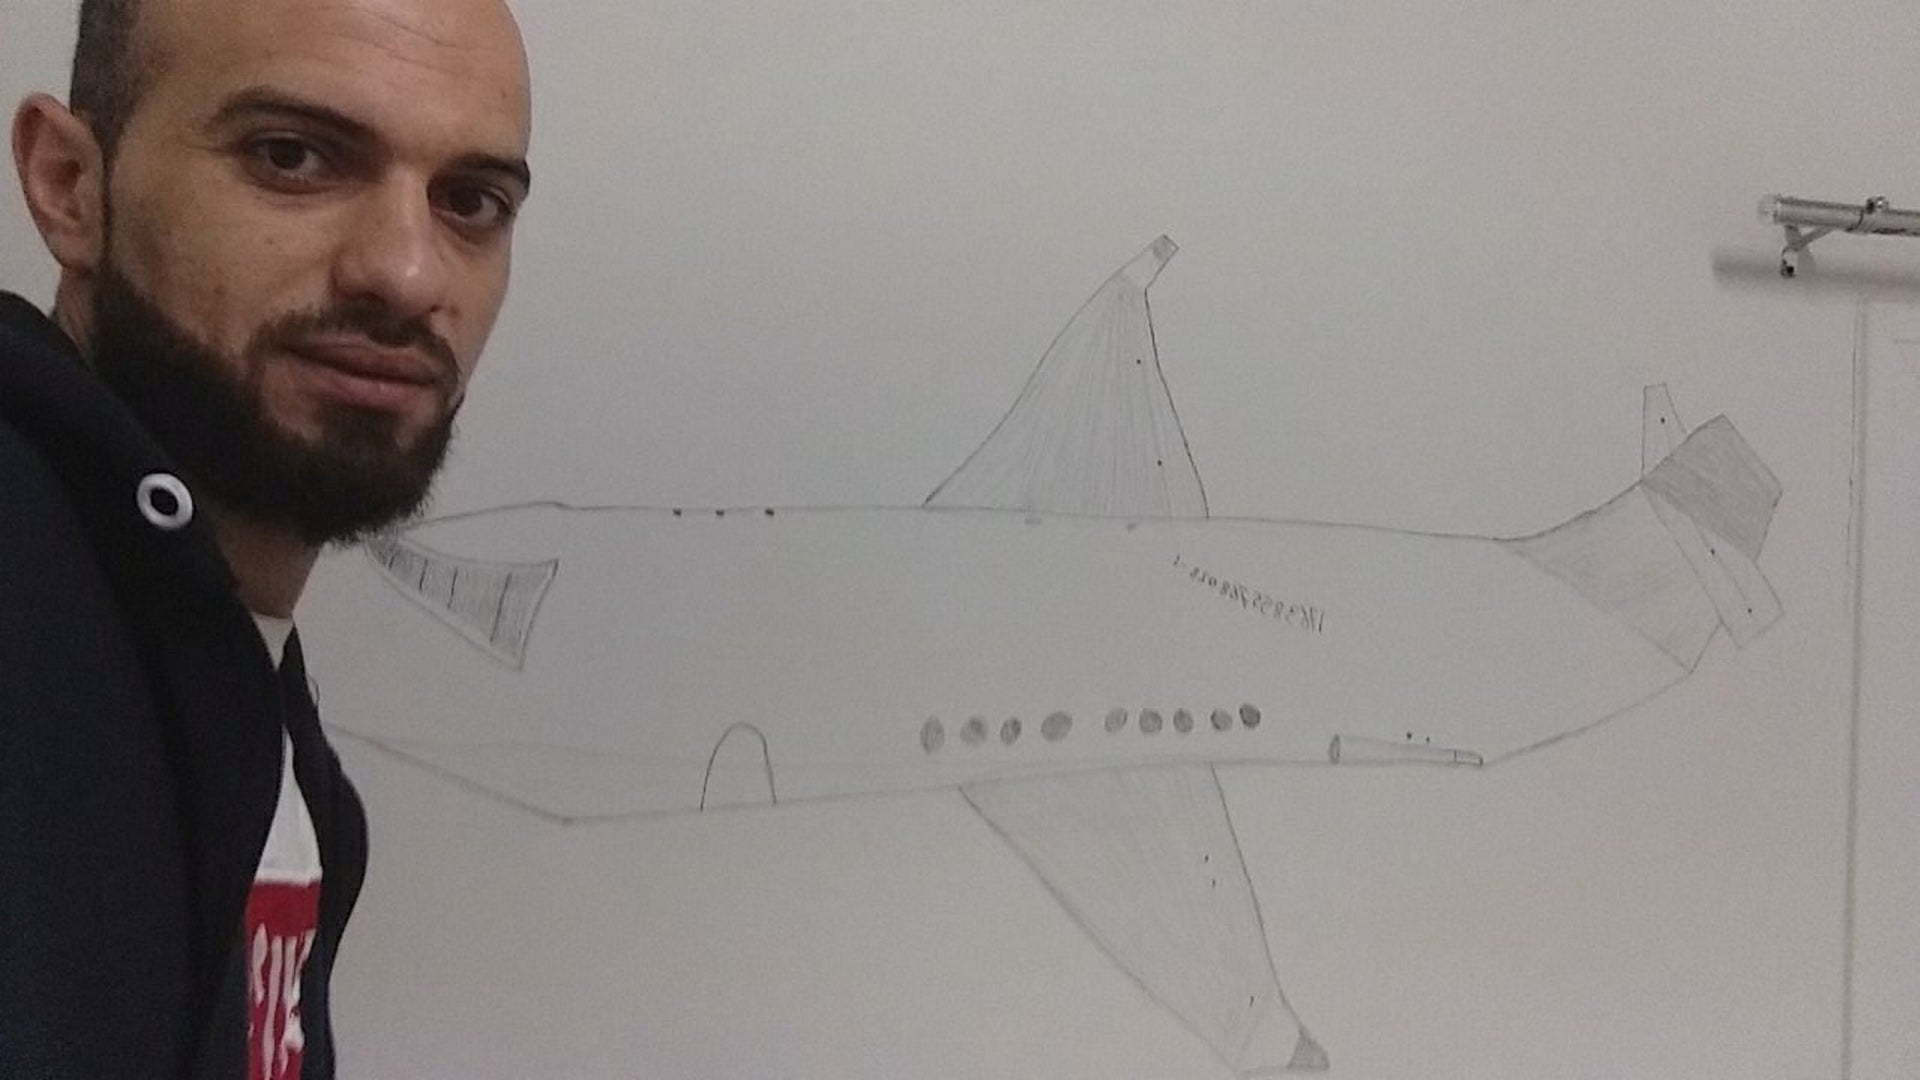 Alaa Alghamri and the plane he drew on the wall of his room.